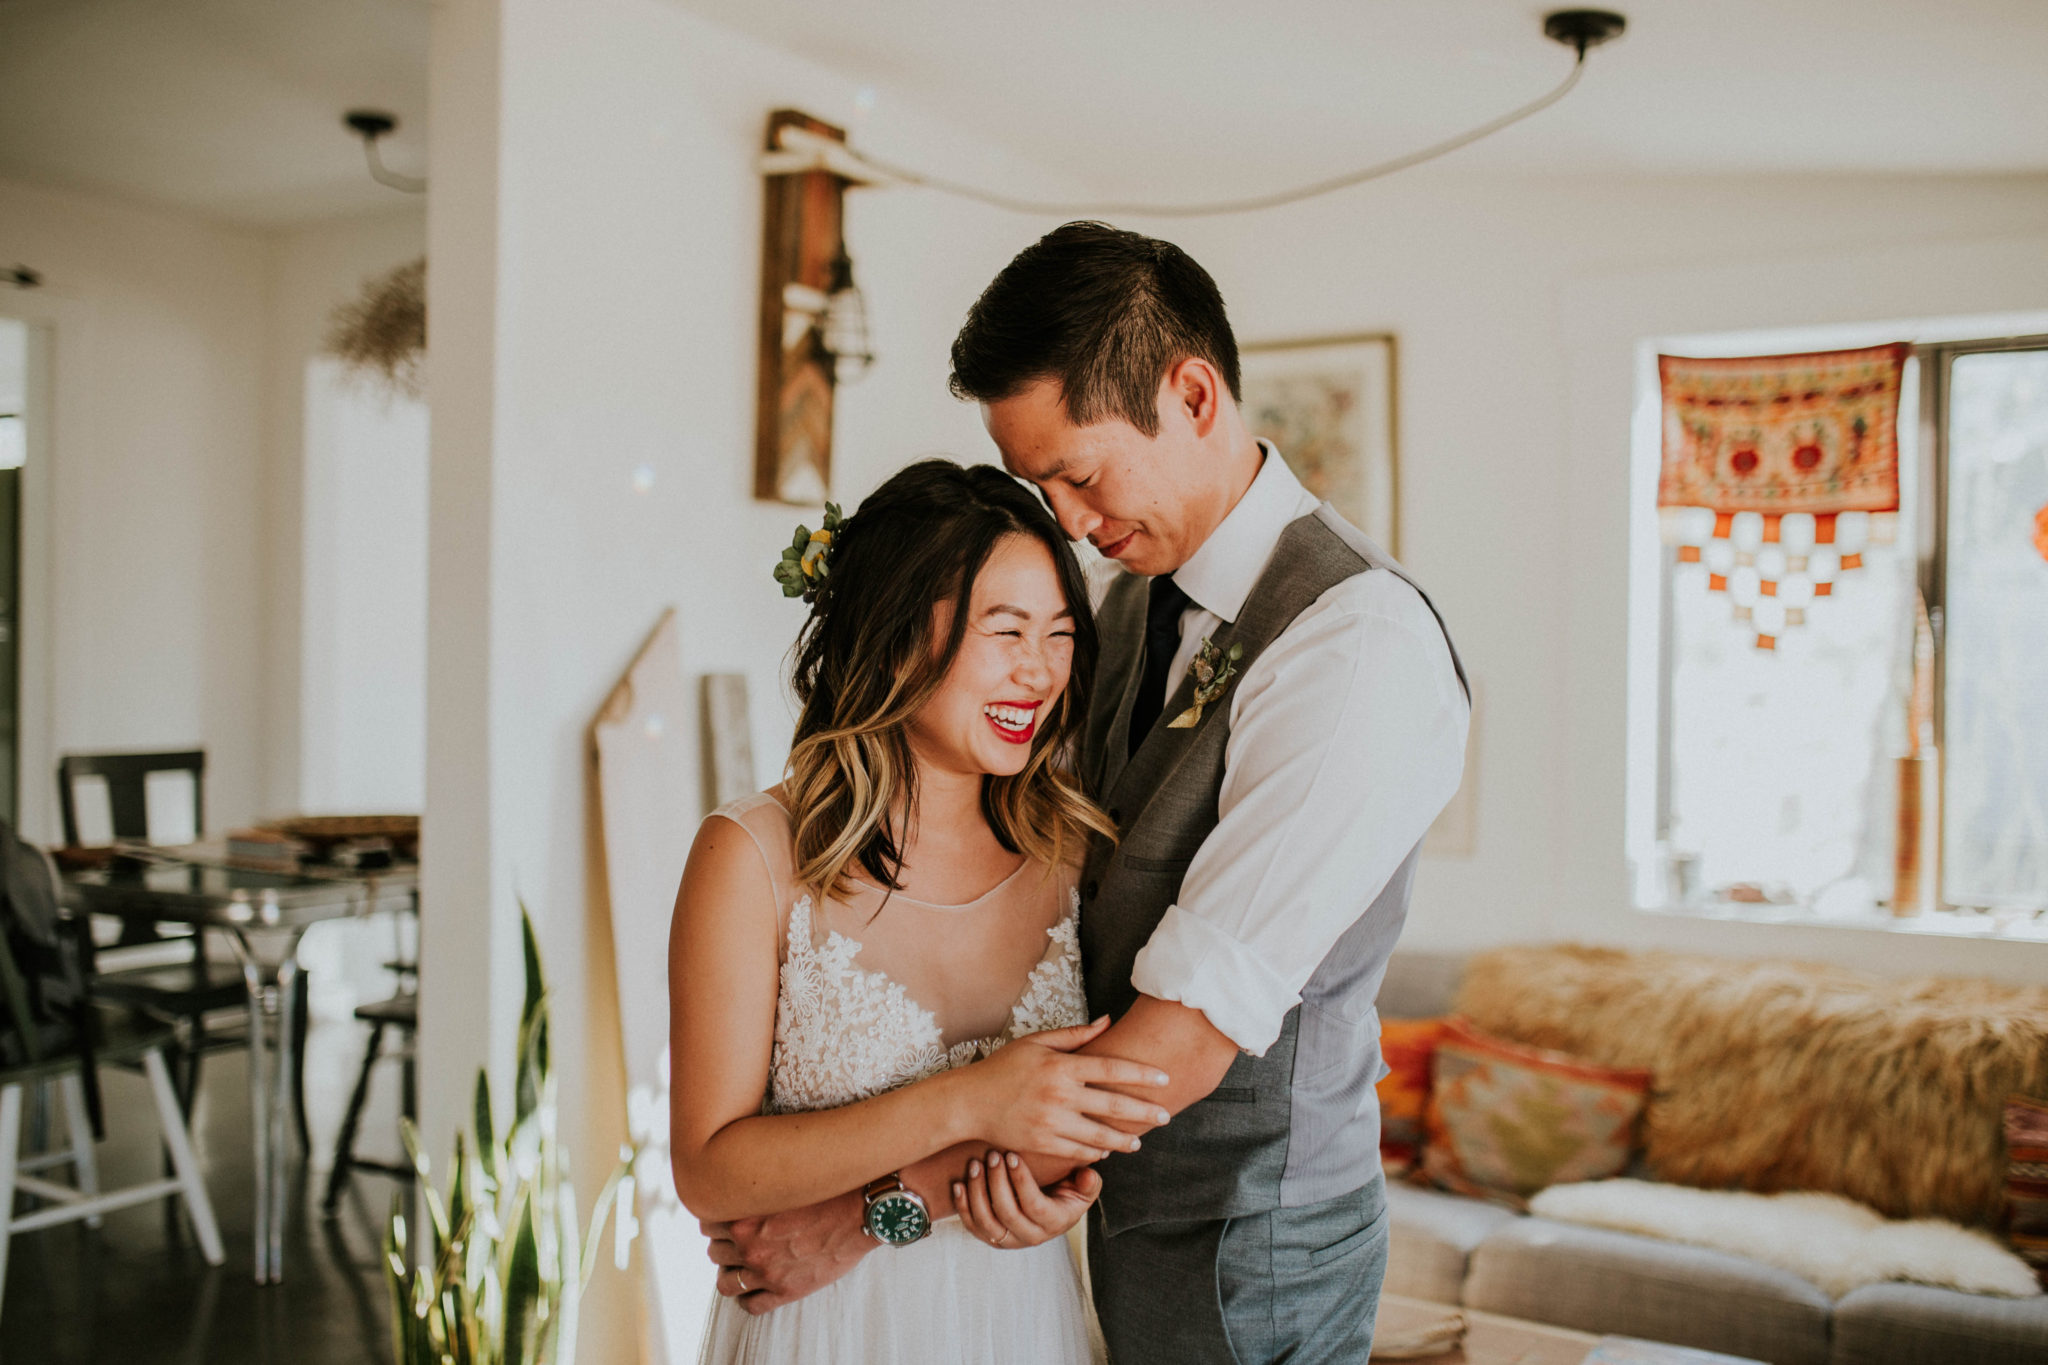 Mandy & Joey Joshua Tree Elopement California Wedding Photographer-52